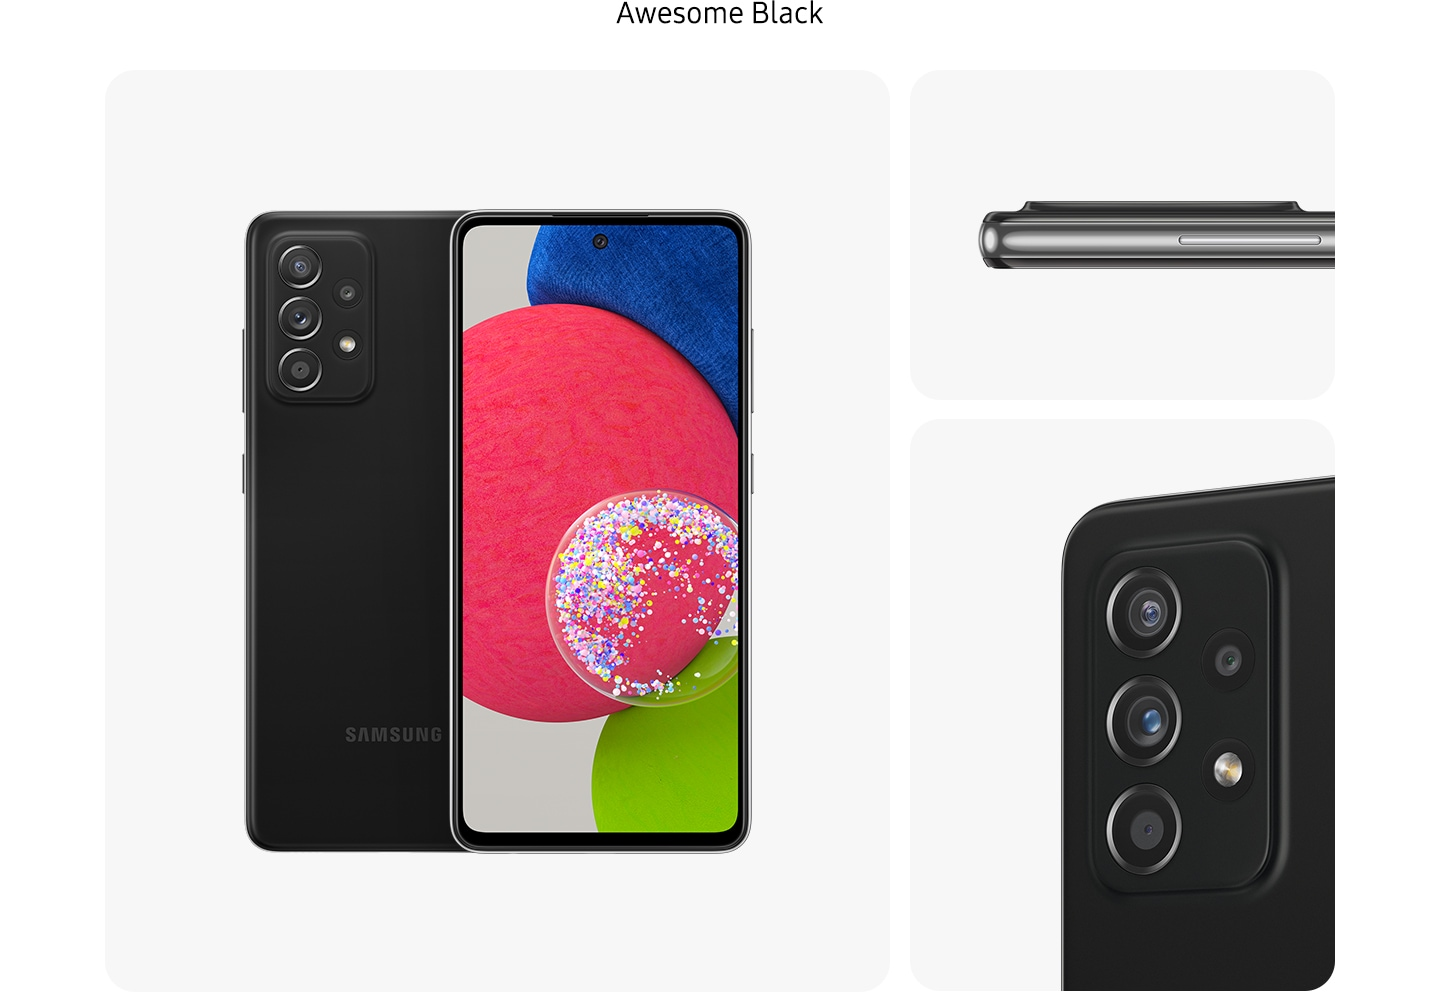 2. BlackGalaxy A52s 5G in Awesome Black, seen from multiple angles to show the design: rear, front, side and close-up on the rear camera.